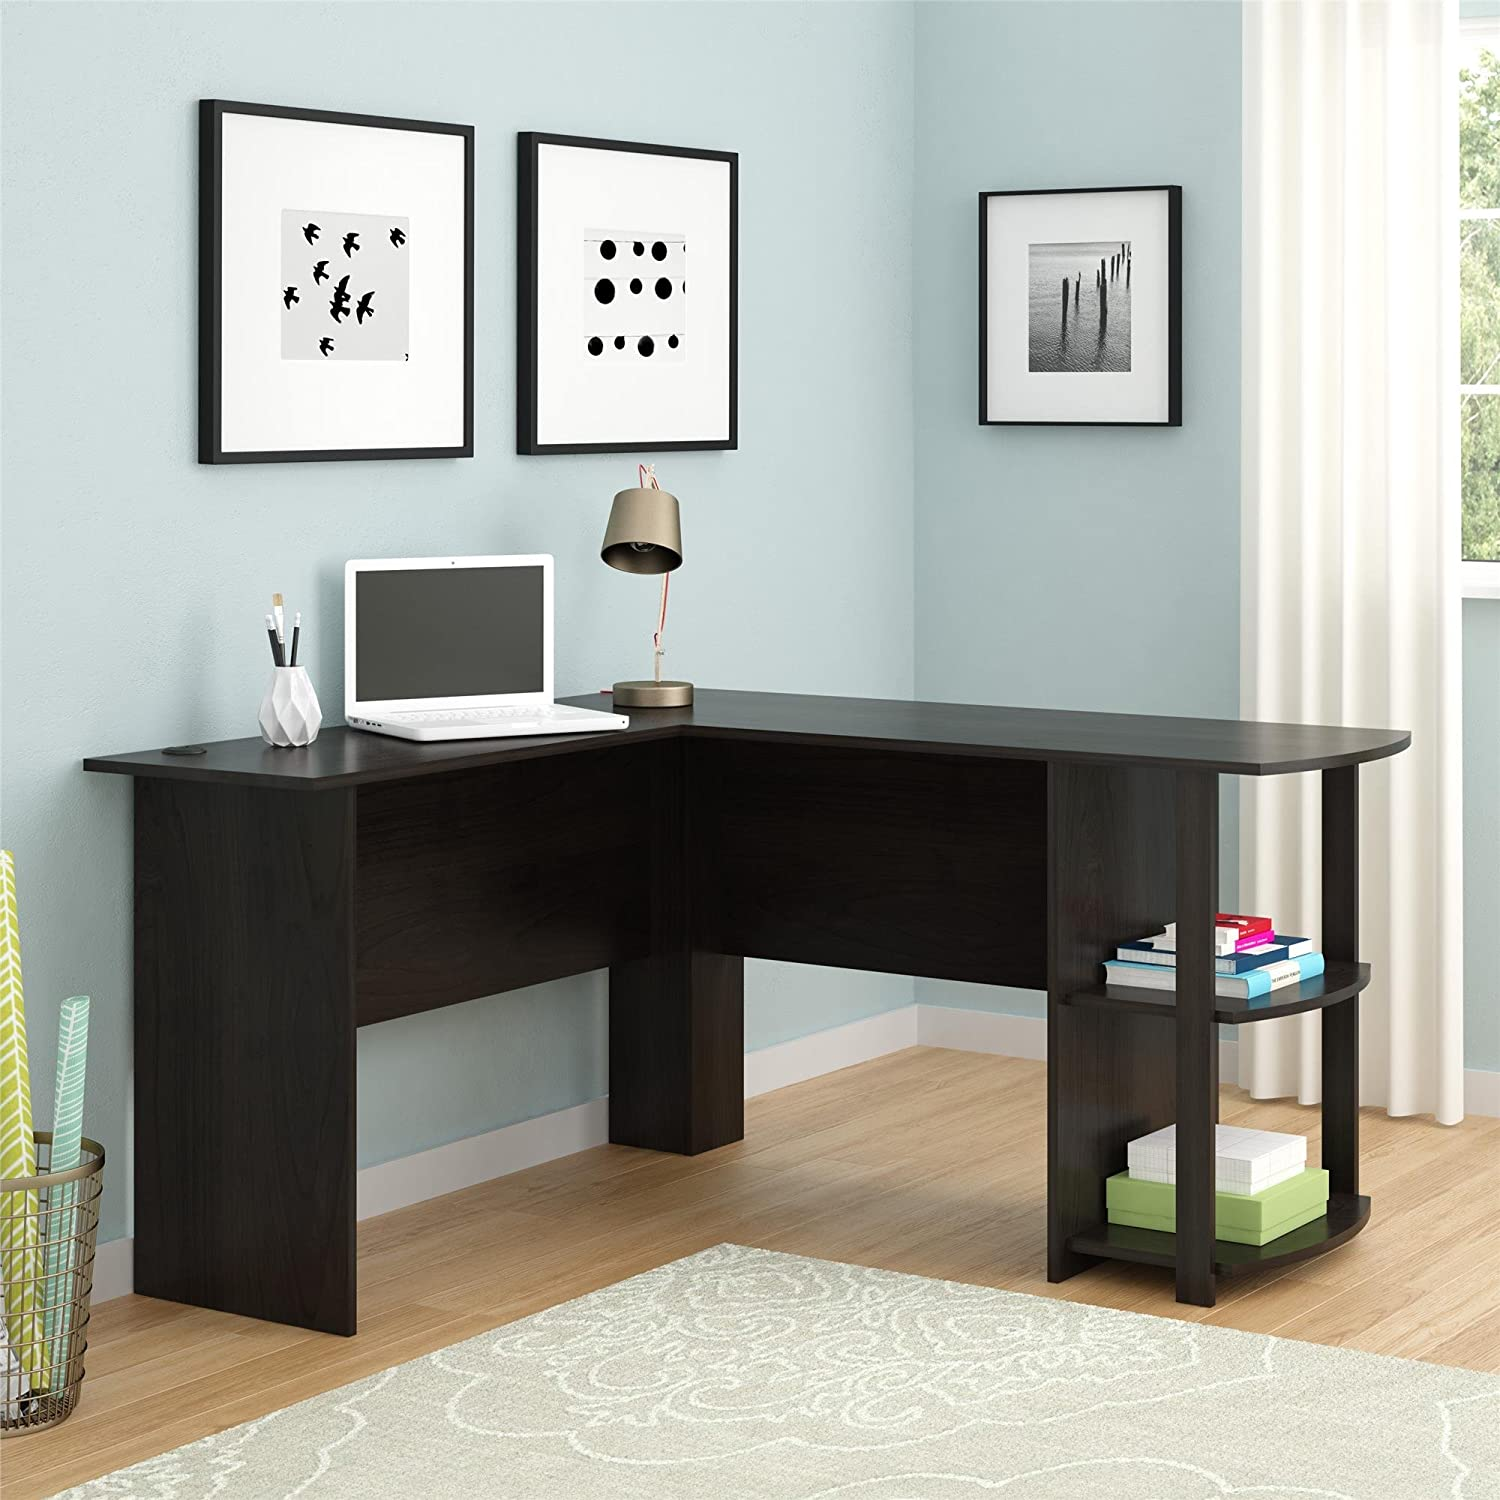 Altra Dakota L-Shaped Desk with Bookshelves $69